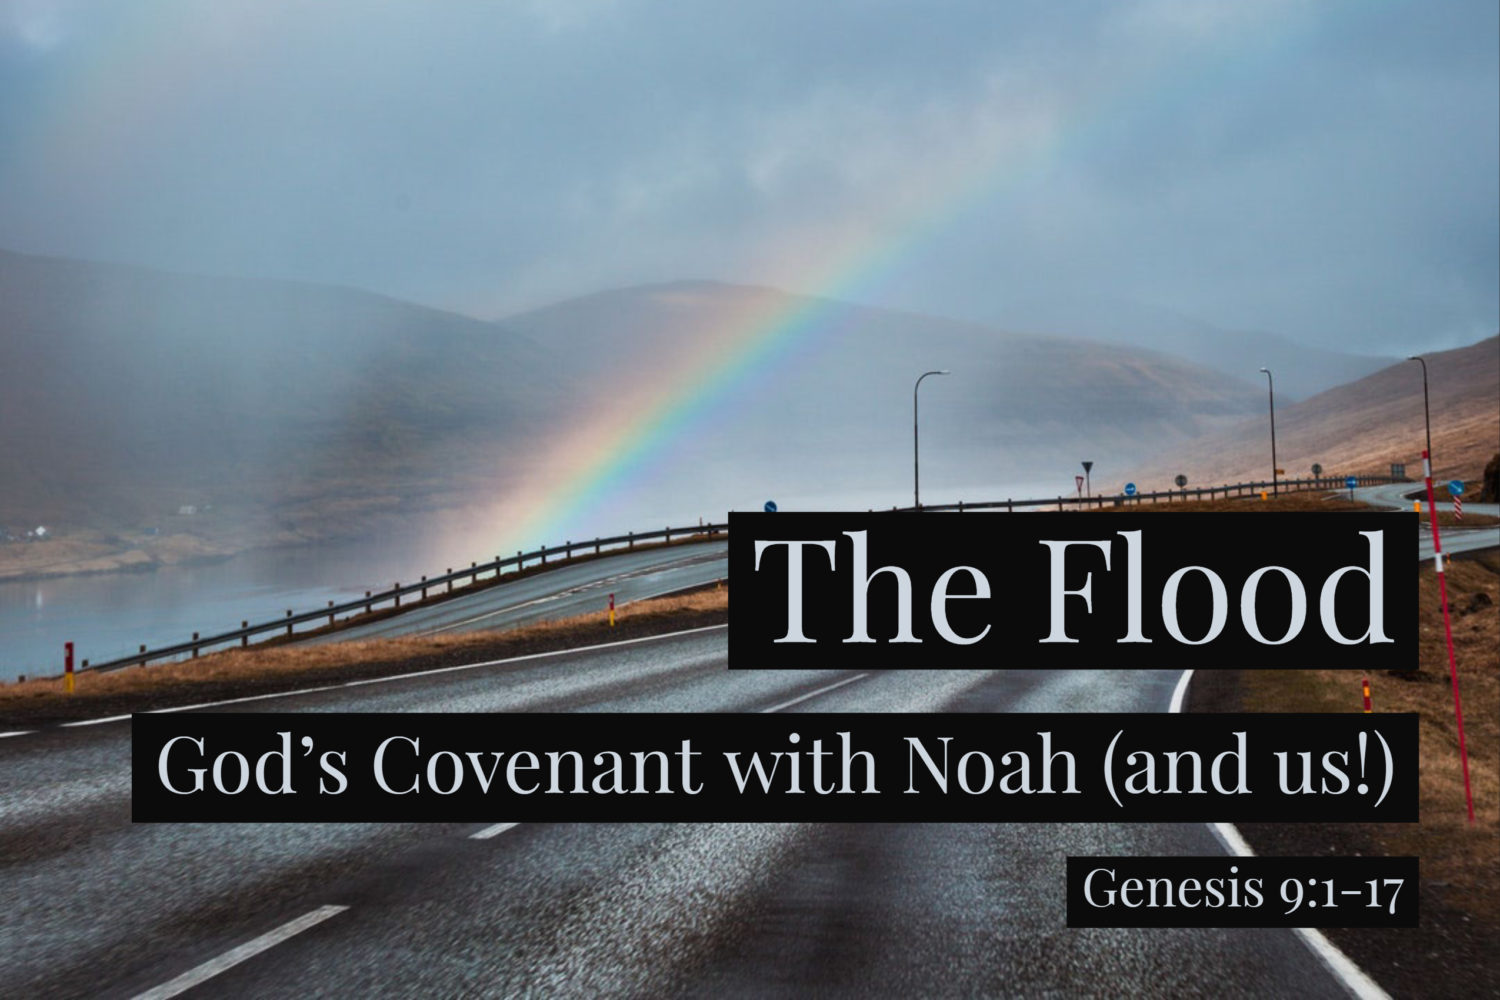 The Flood - God's Covenant with Noah (and us!) - Welbeck